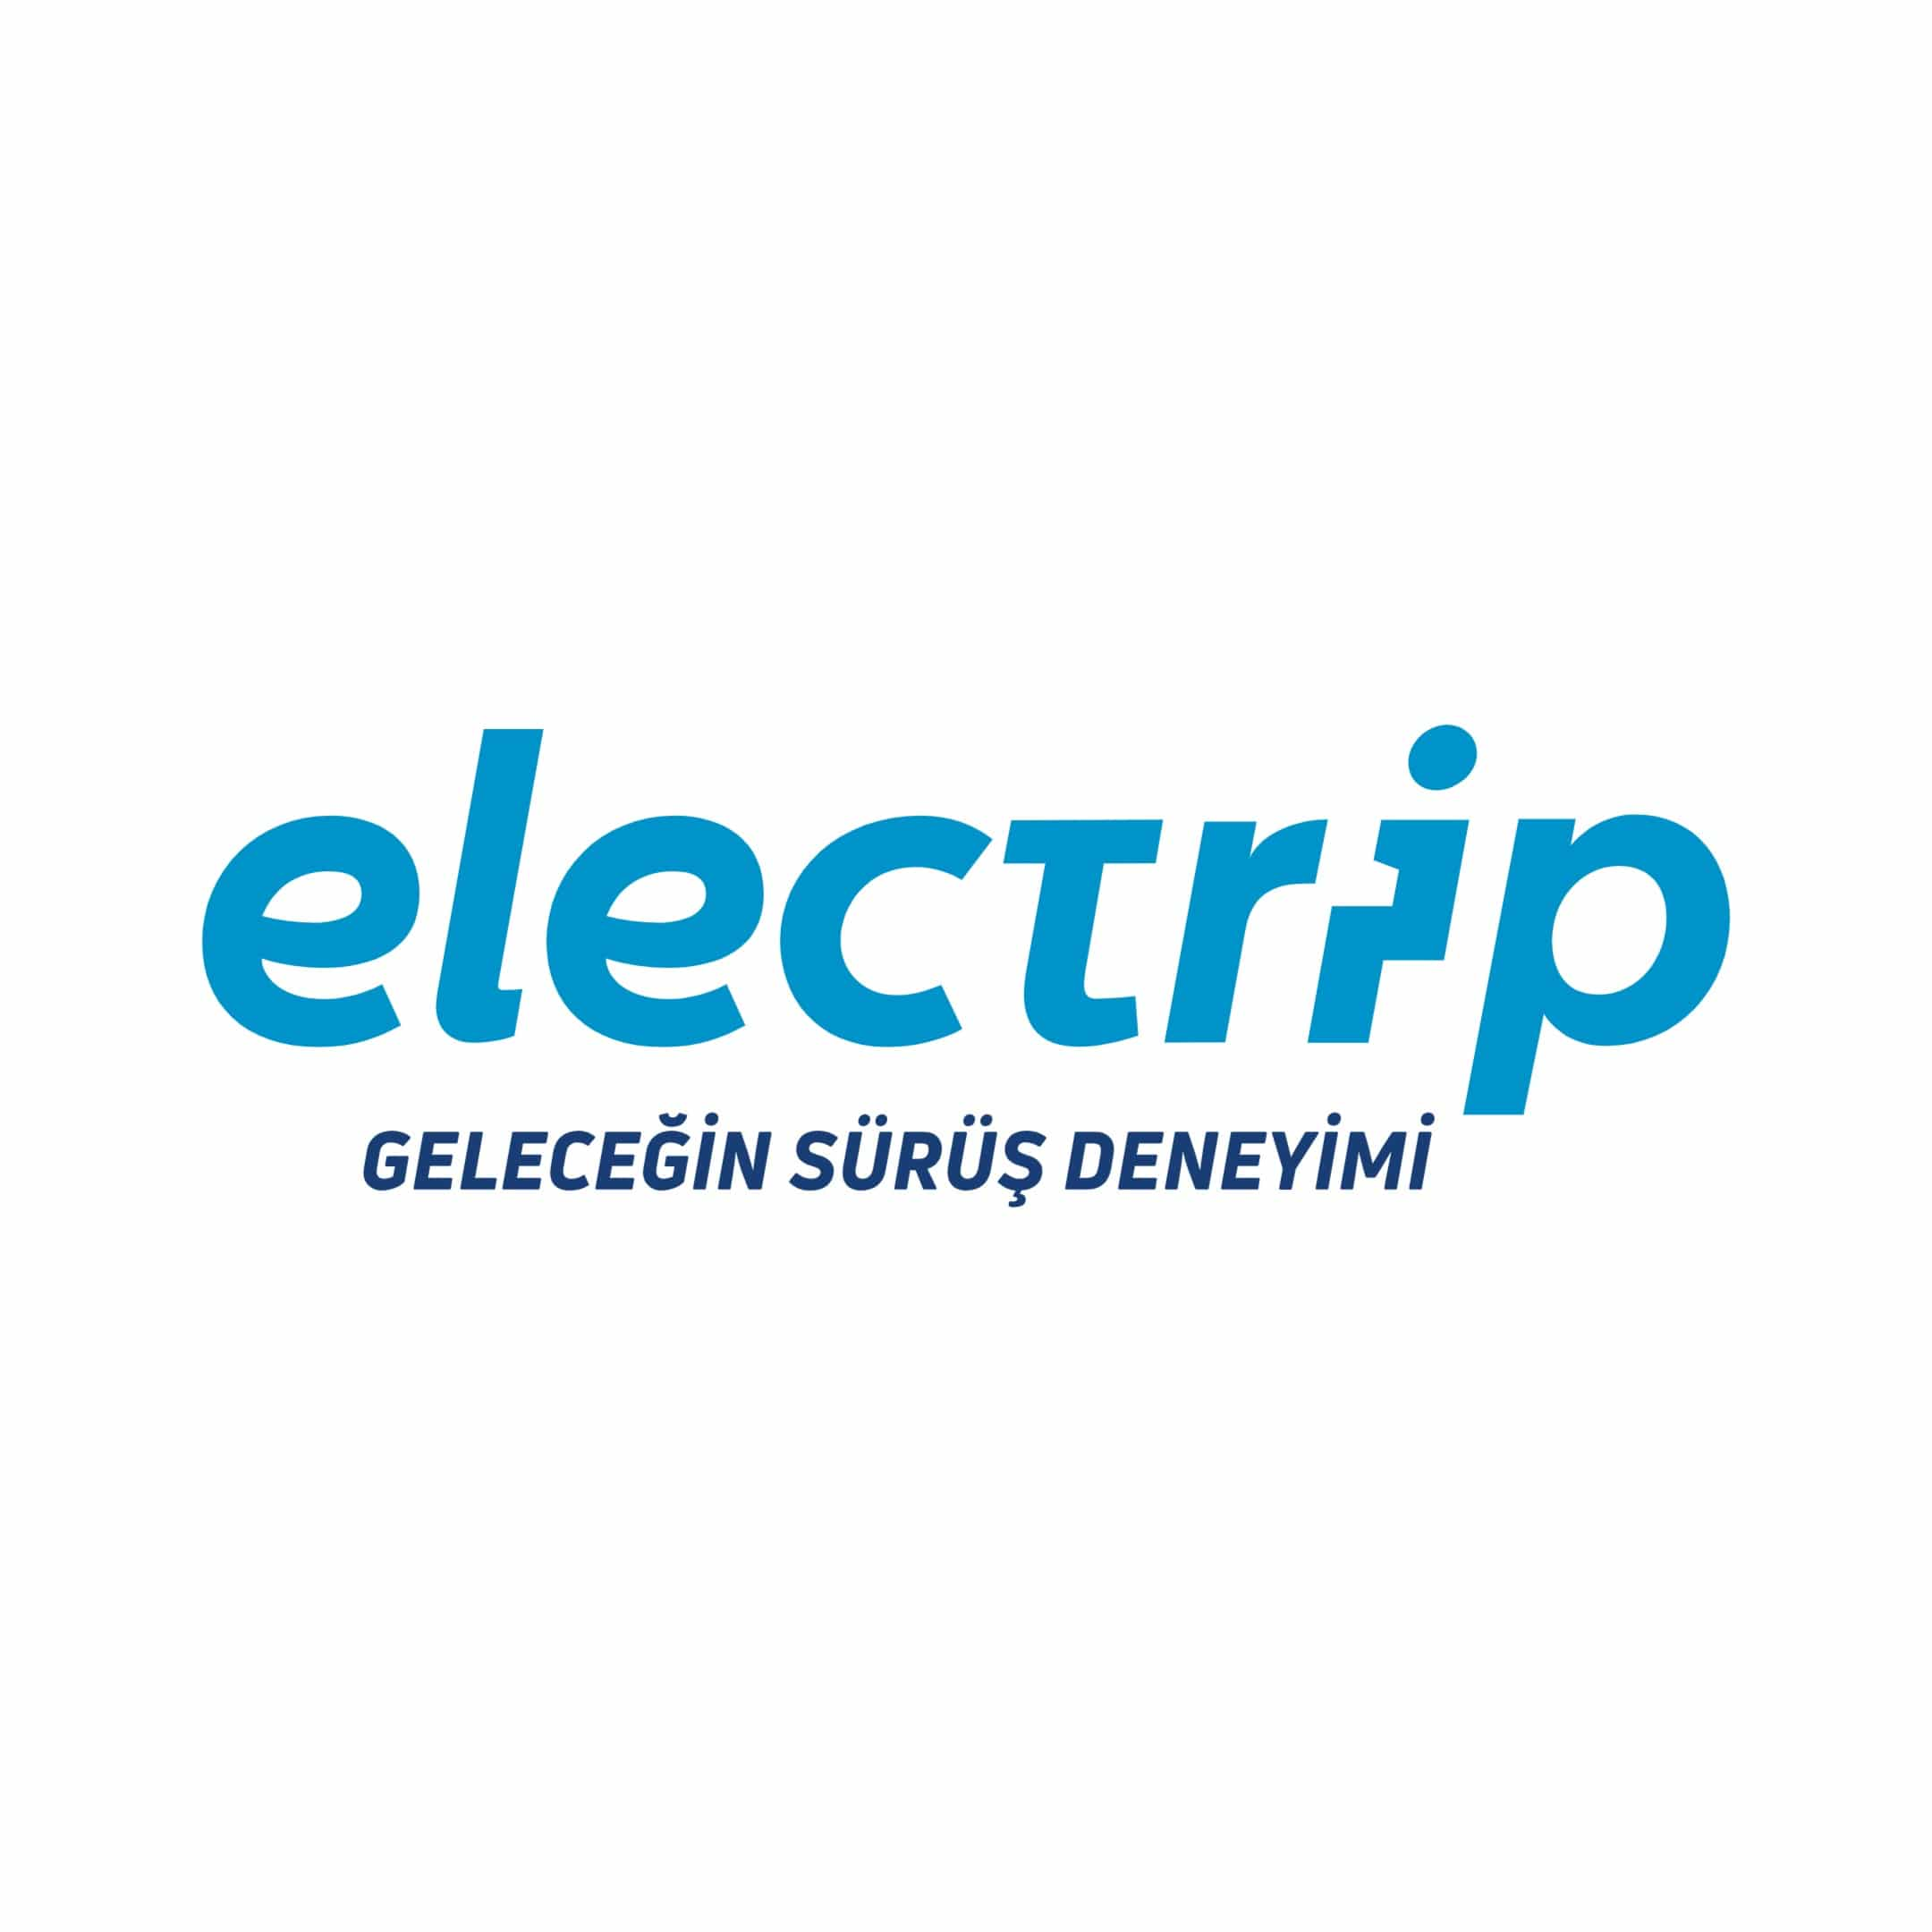 electrip logo